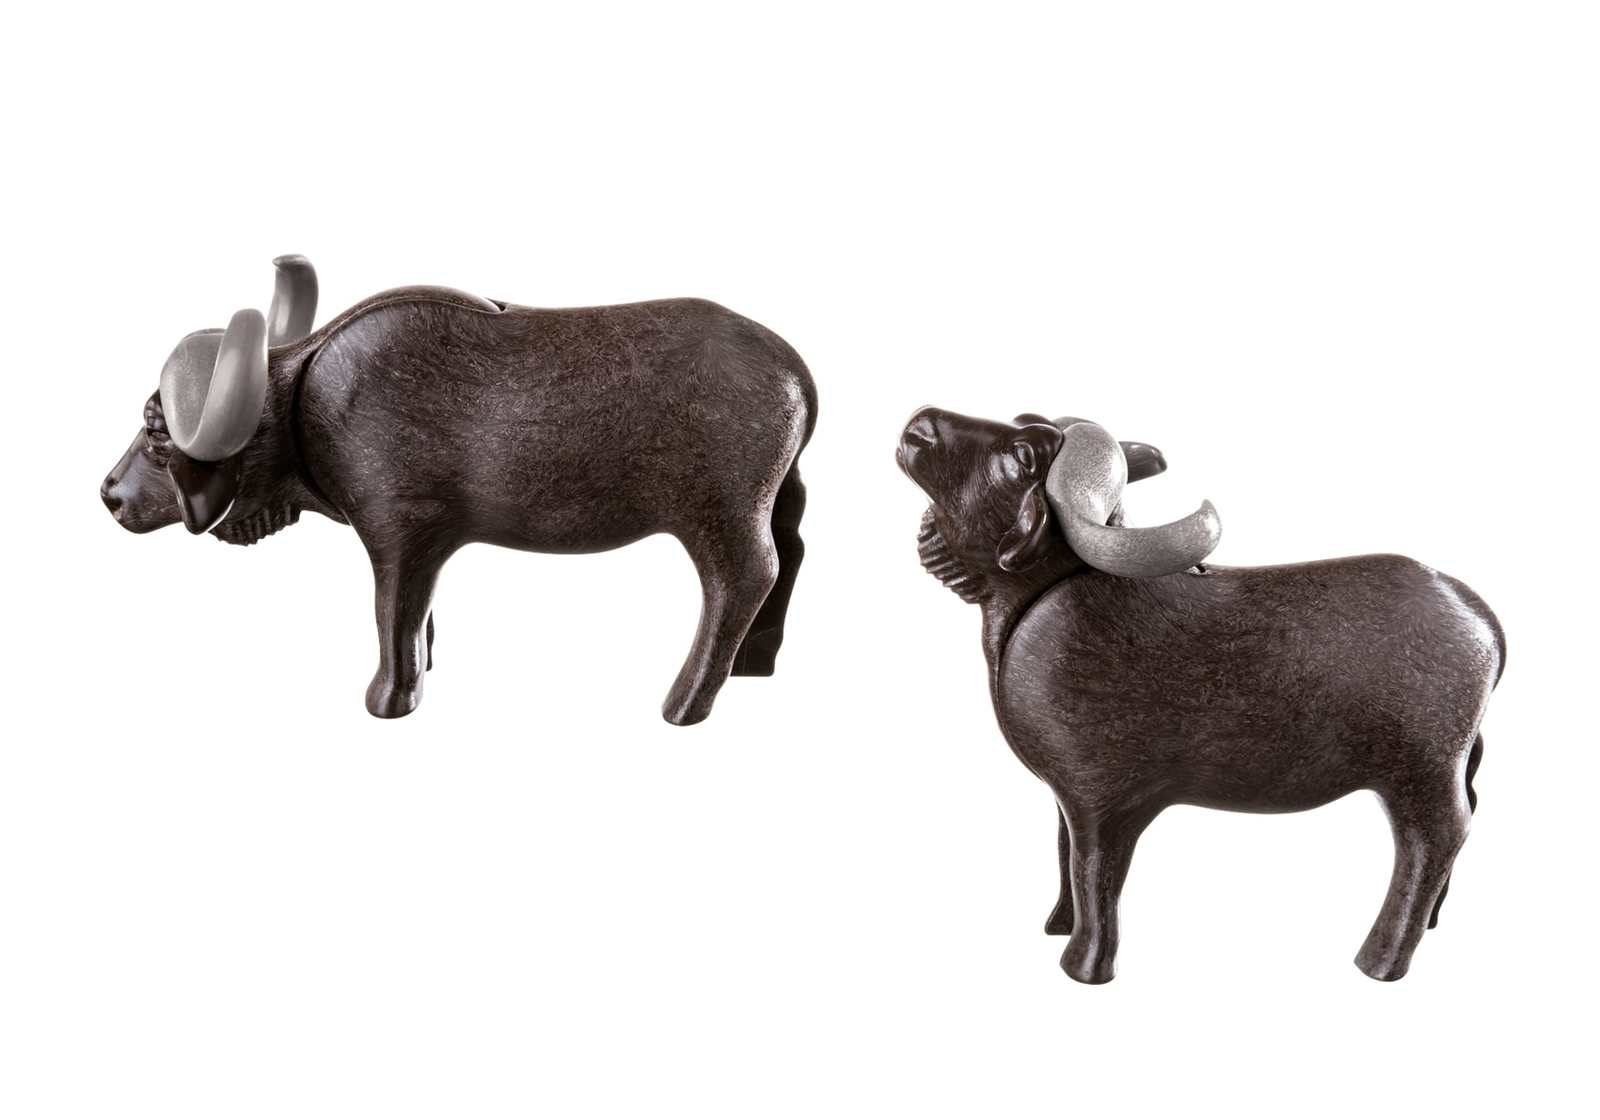 Playmobil: Wildlife - Water Buffaloes image